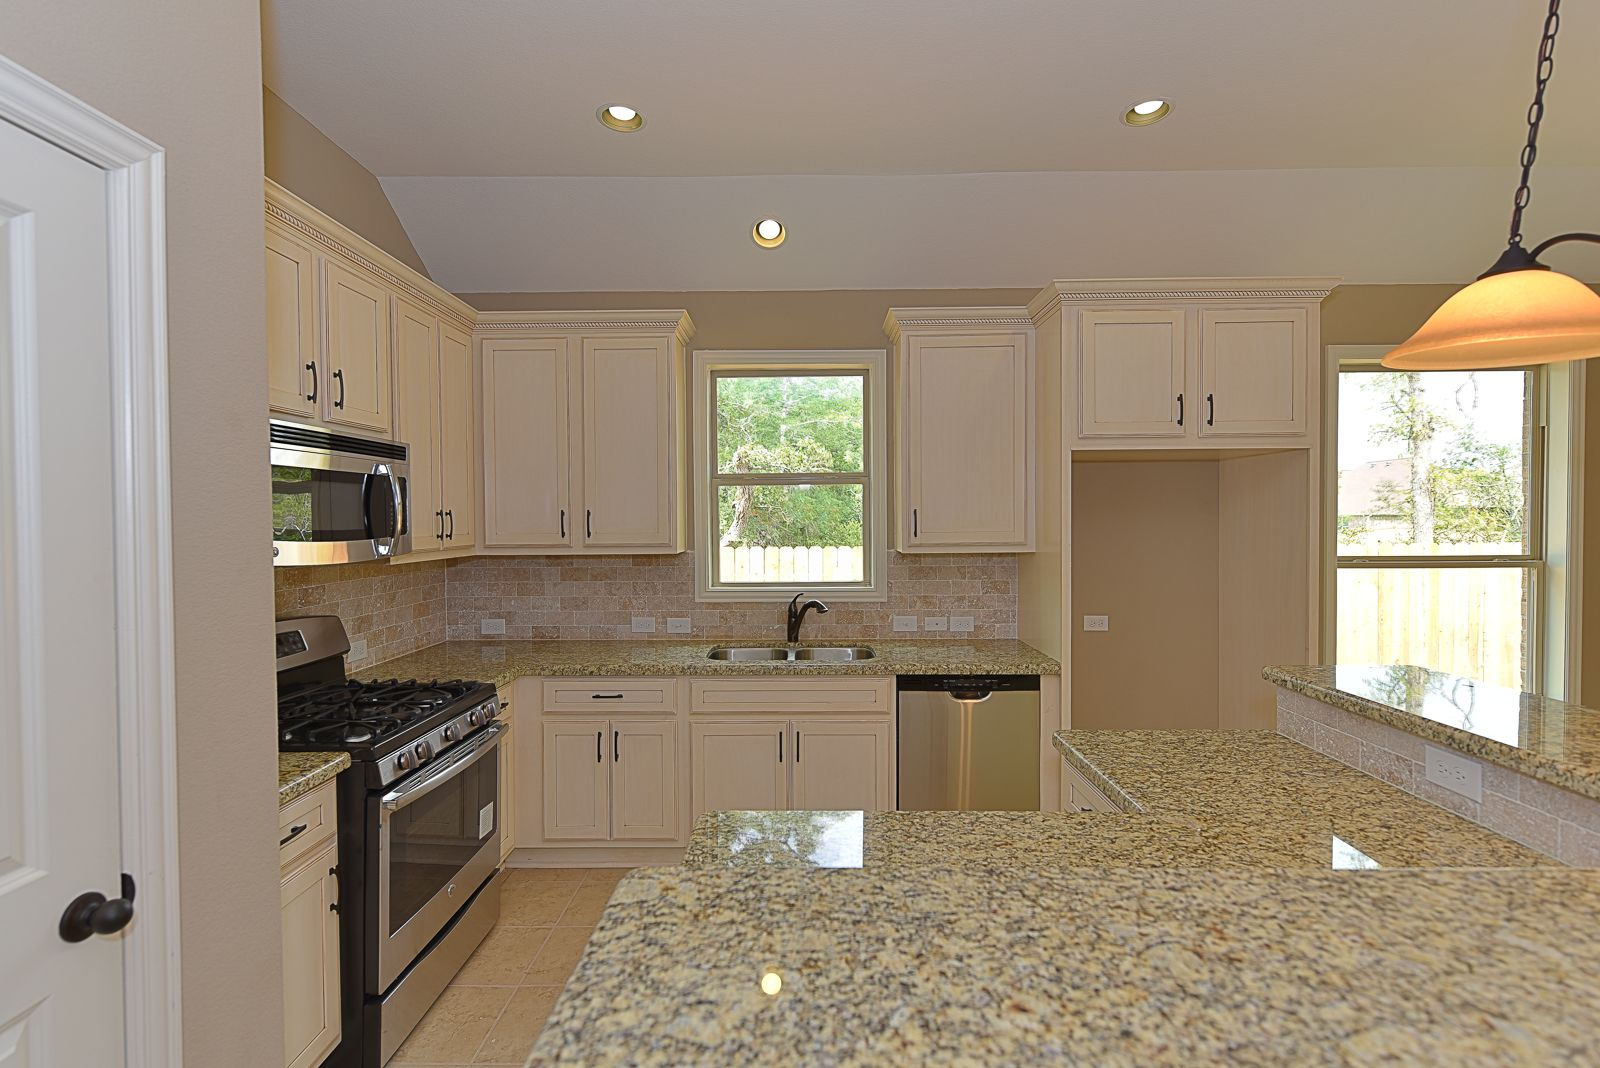 Kitchen featured in The Rene By Kinsmen Homes  in Beaumont, TX